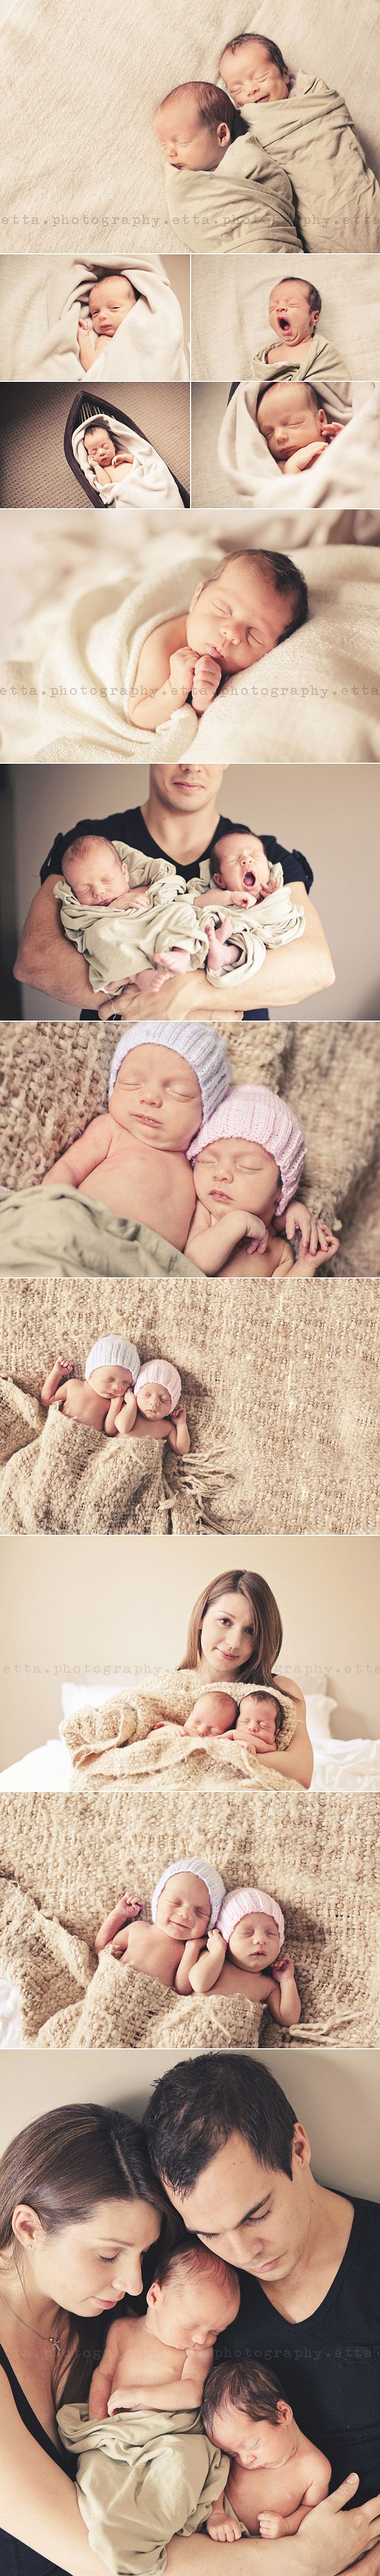 twin babies- I will ALWAYS regret not getting maternity/newborn portraits with my twins!!! :( next time I most certainly will!!!